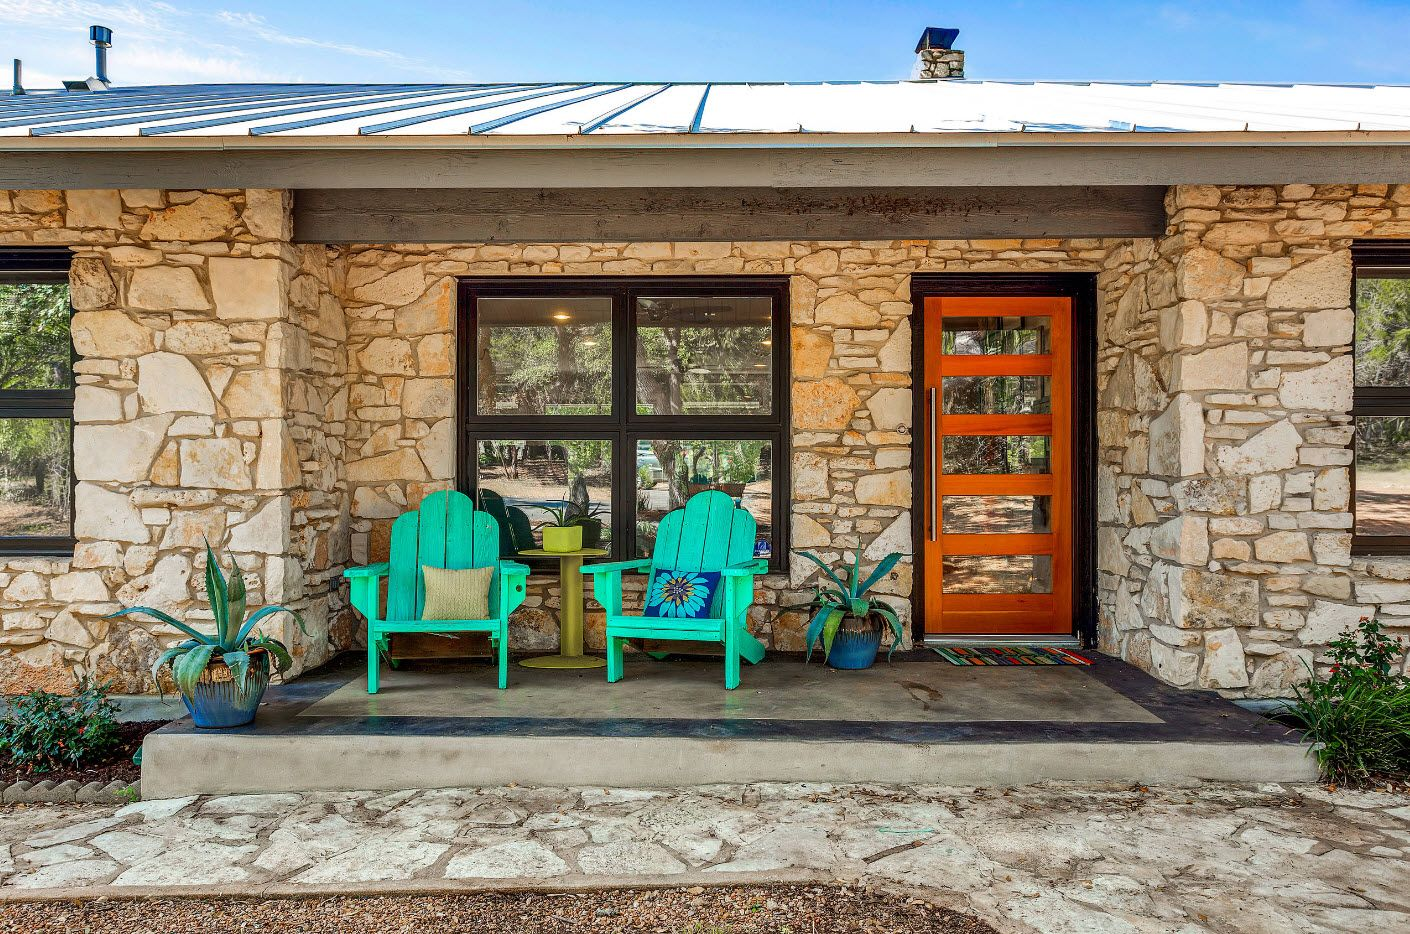 Country House Porch Decoration & Design Ideas. Sand color stone trimming of the facade